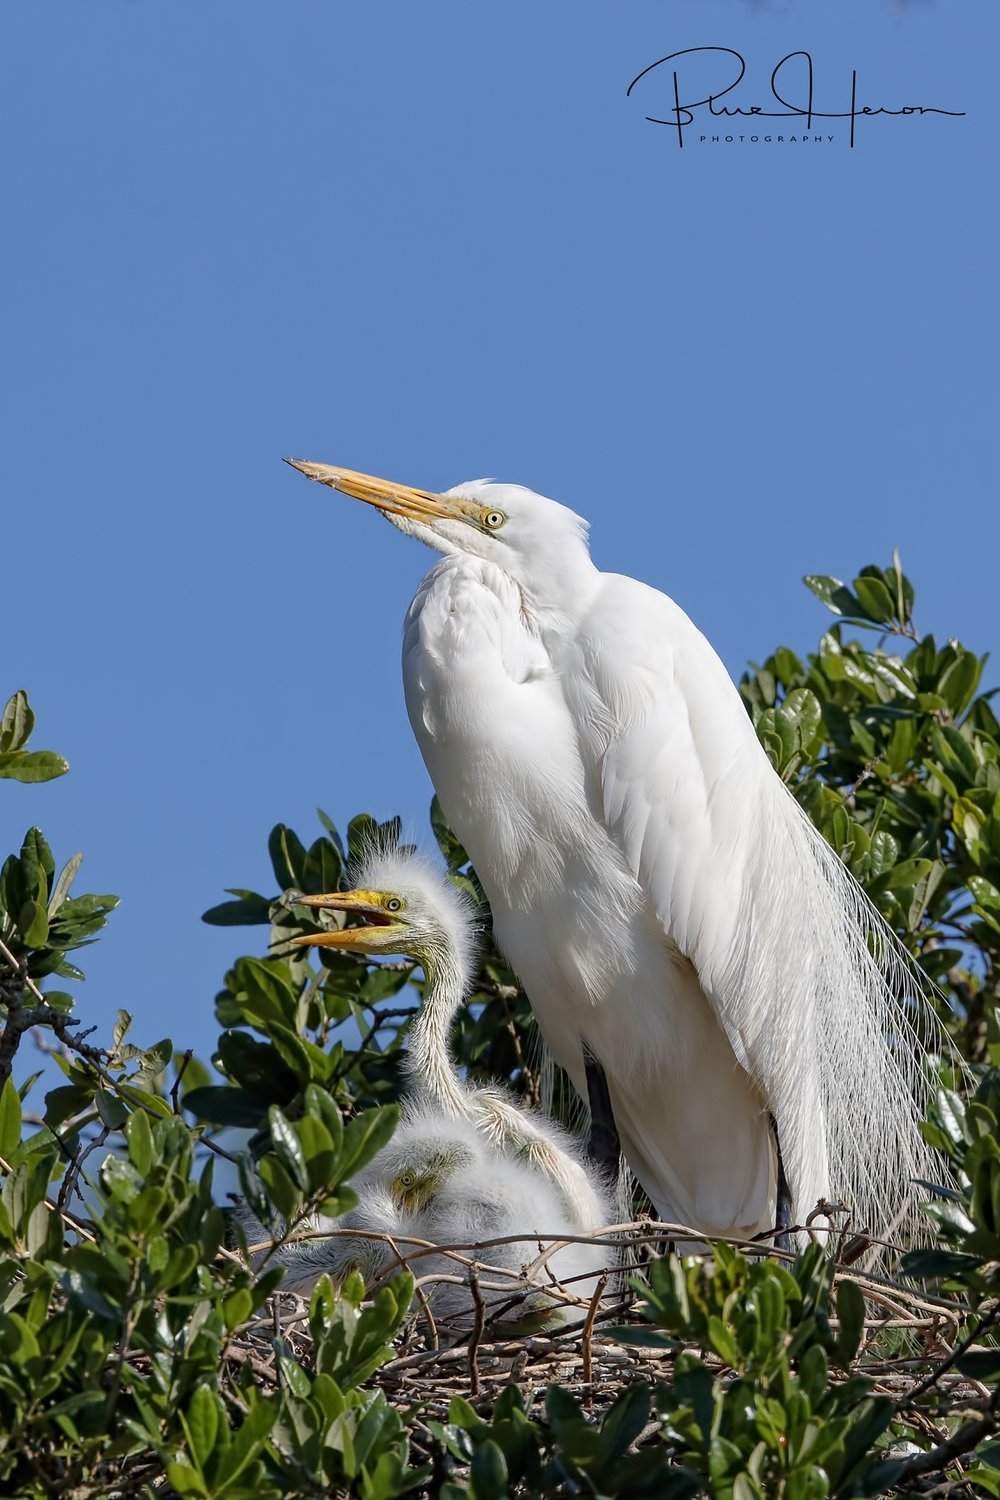 Great Egret and nestlings